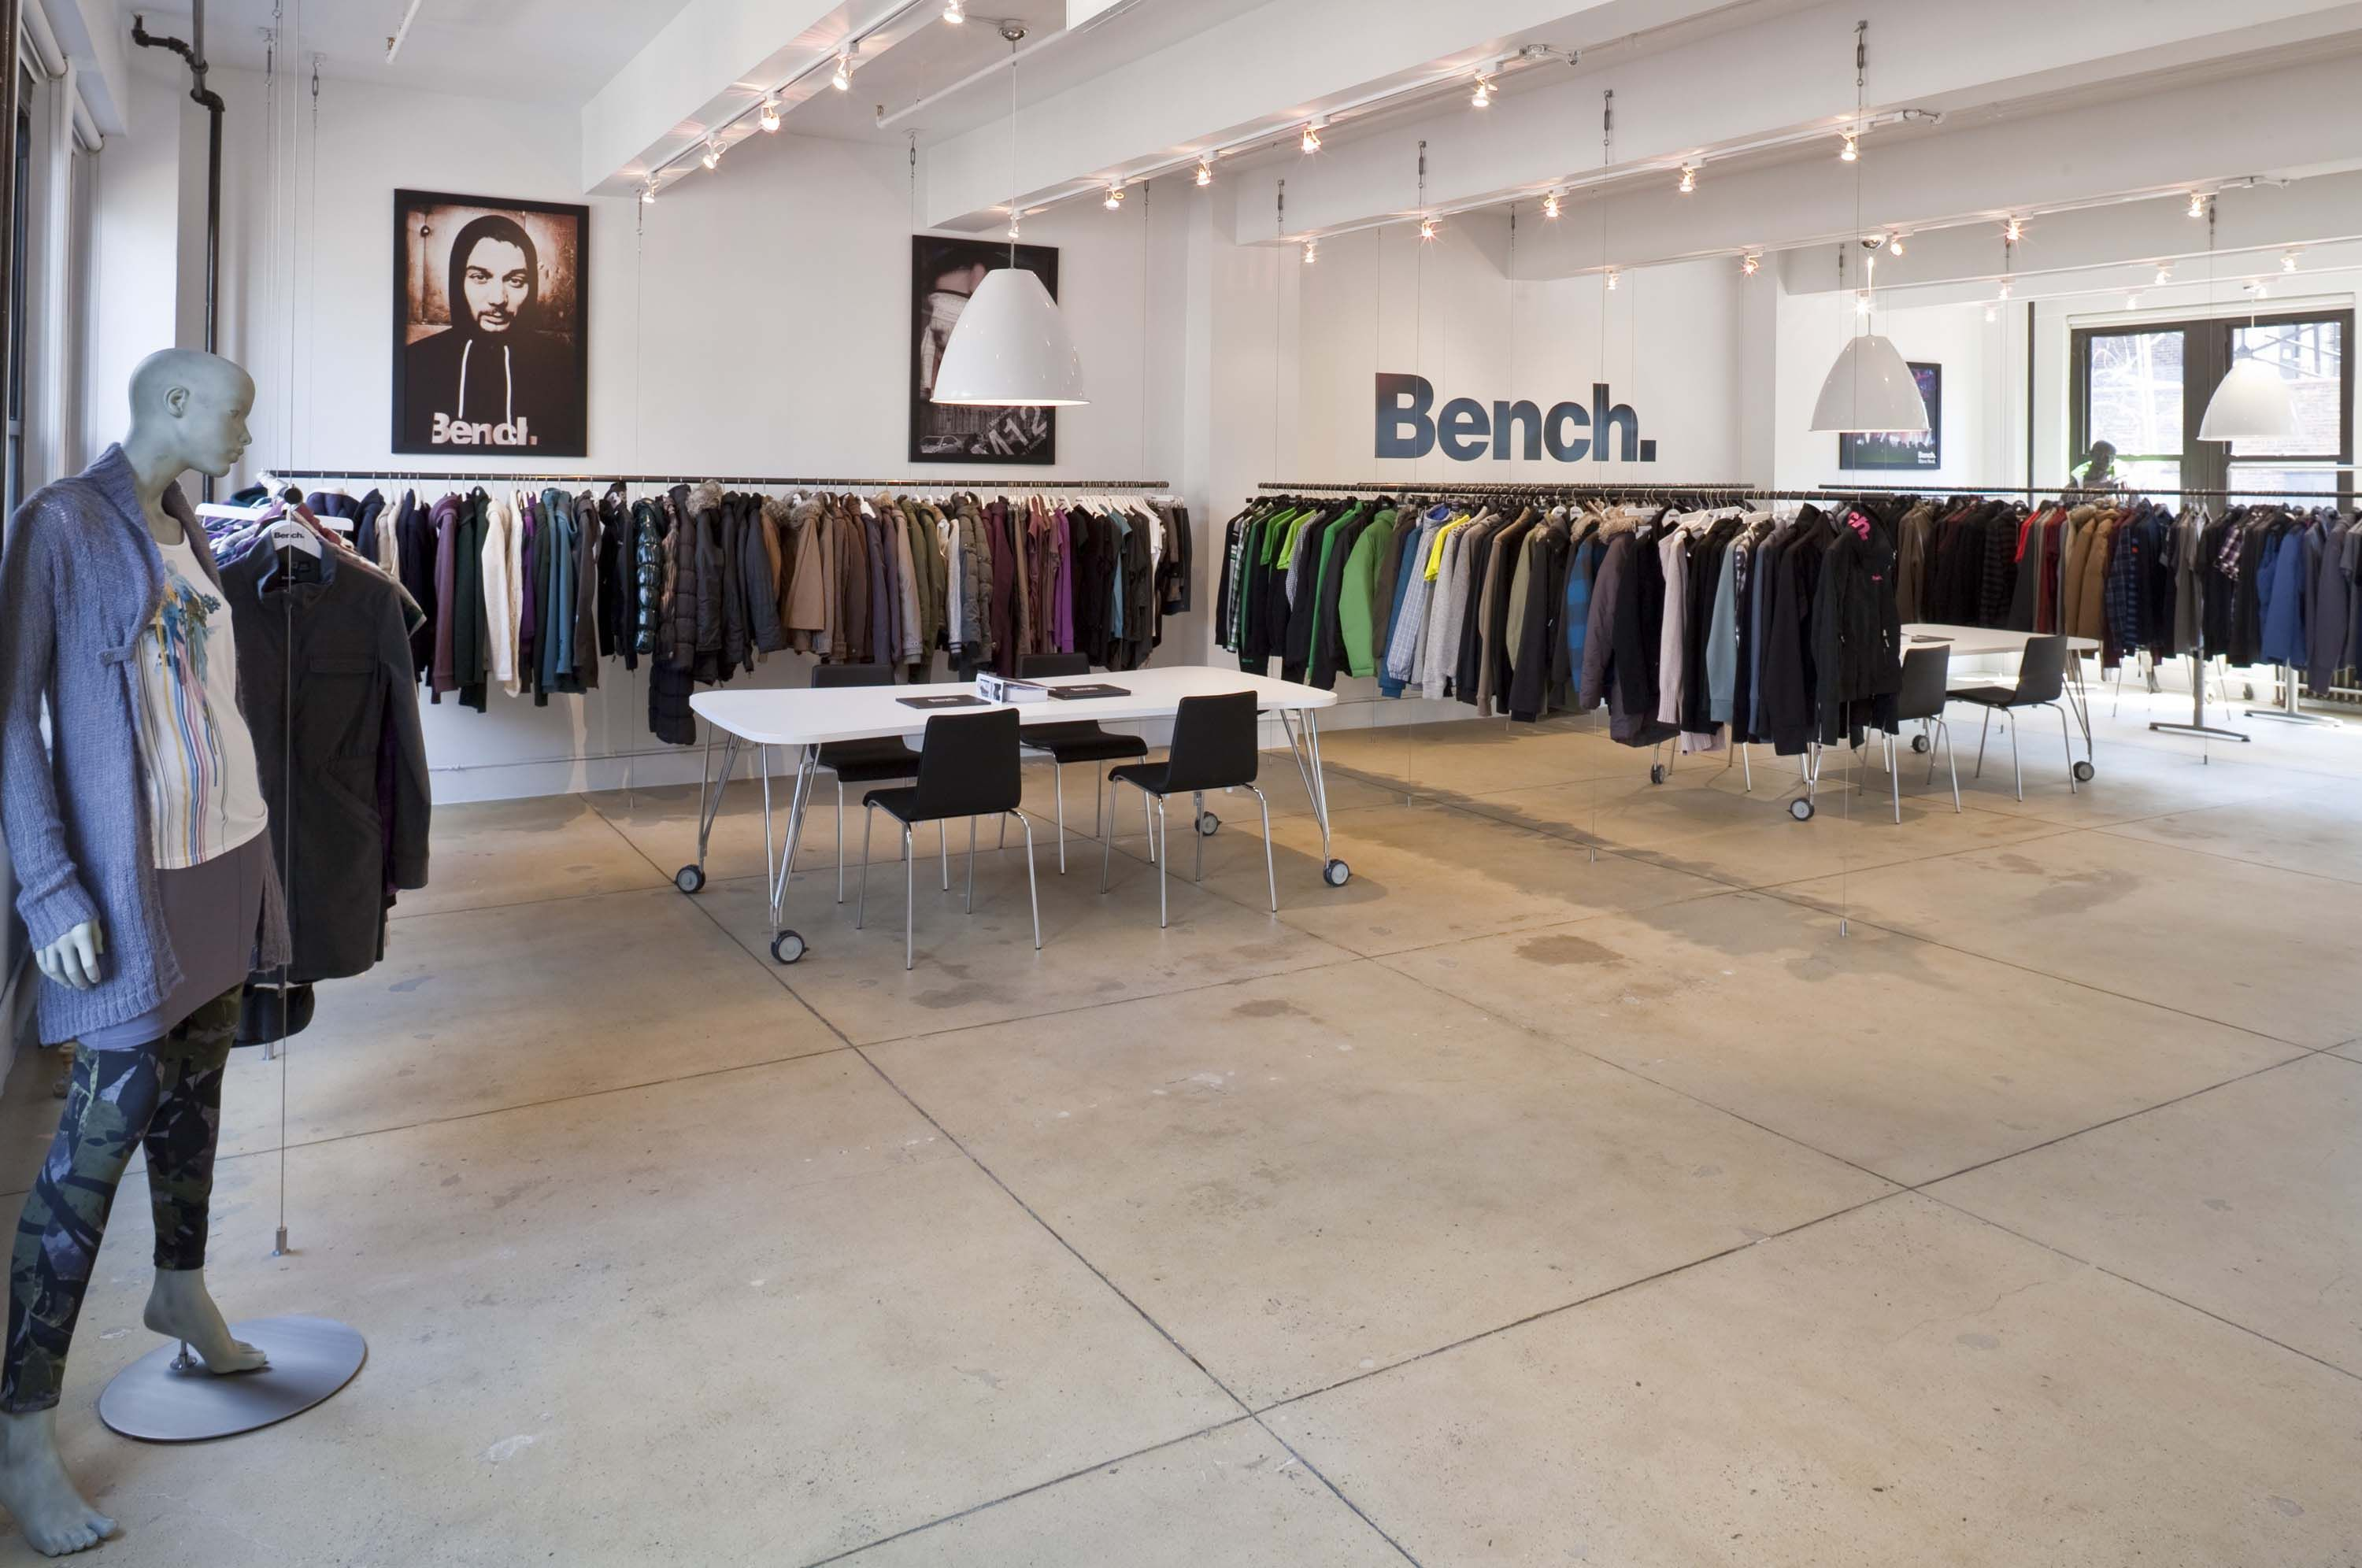 Bench The Activewear Fashion Label Based In The Uk Contracted Bryan Johnson Design To Conceptualize And Execute The Desi Showroom Design Retail Design Design